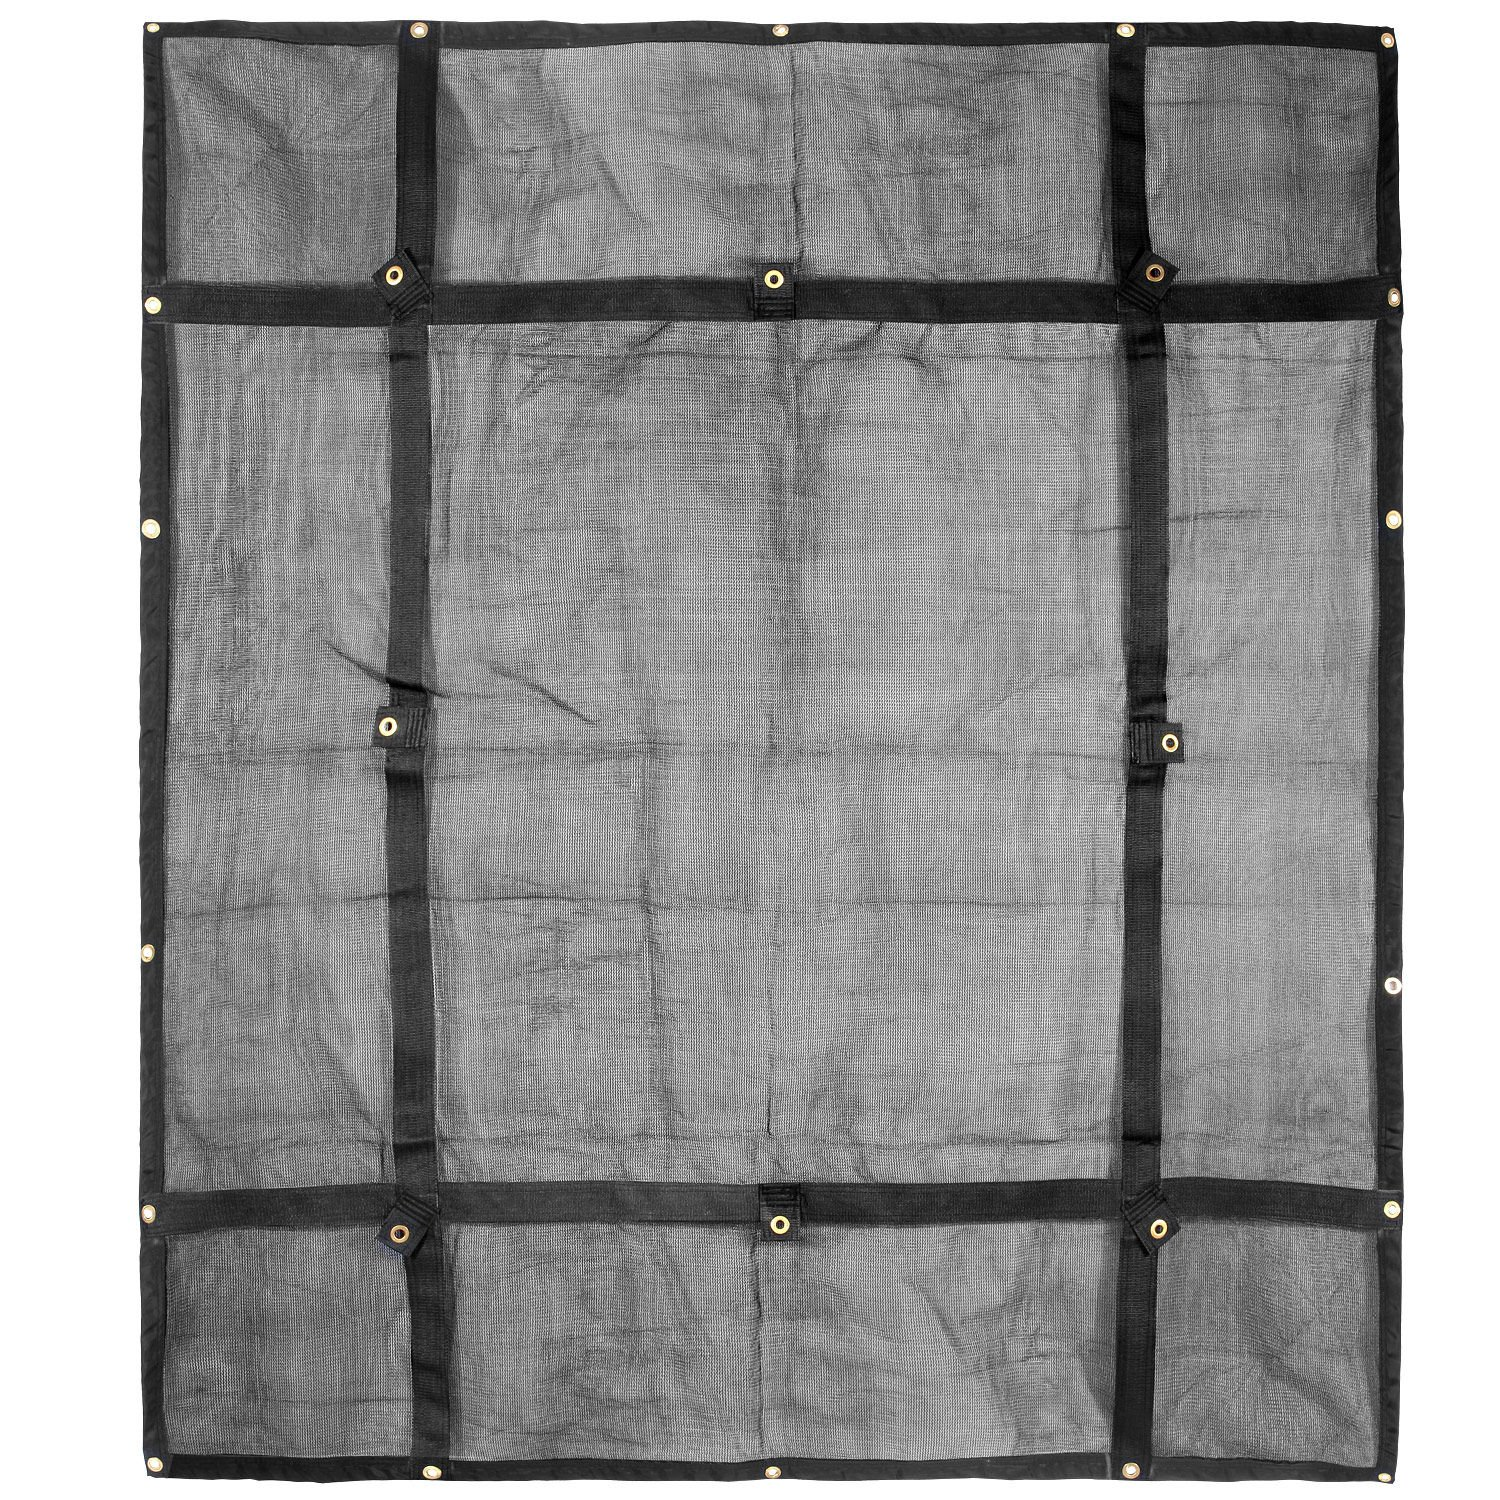 Truck Bed Cargo Net Organizer 6.75'x 8' | Heavy Duty Bungee Webbing, Adjustable & Rip Proof Mesh with Grommet Anchoring Points & Tarp